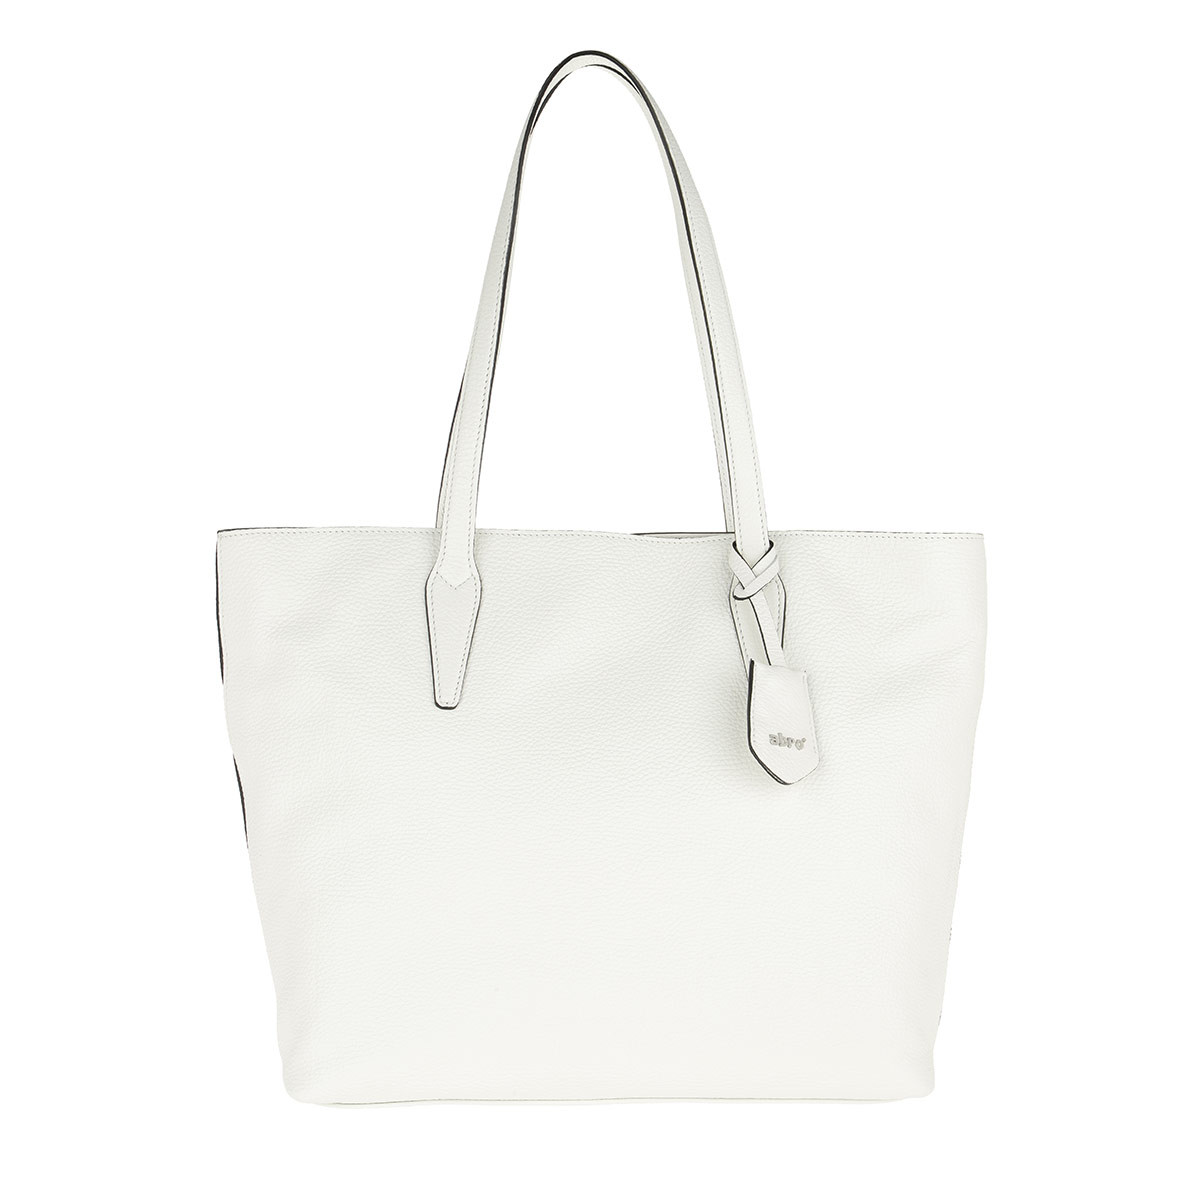 Abro Shopper - Calf Adria Shopper White/Whitegold - in weiß - für Damen